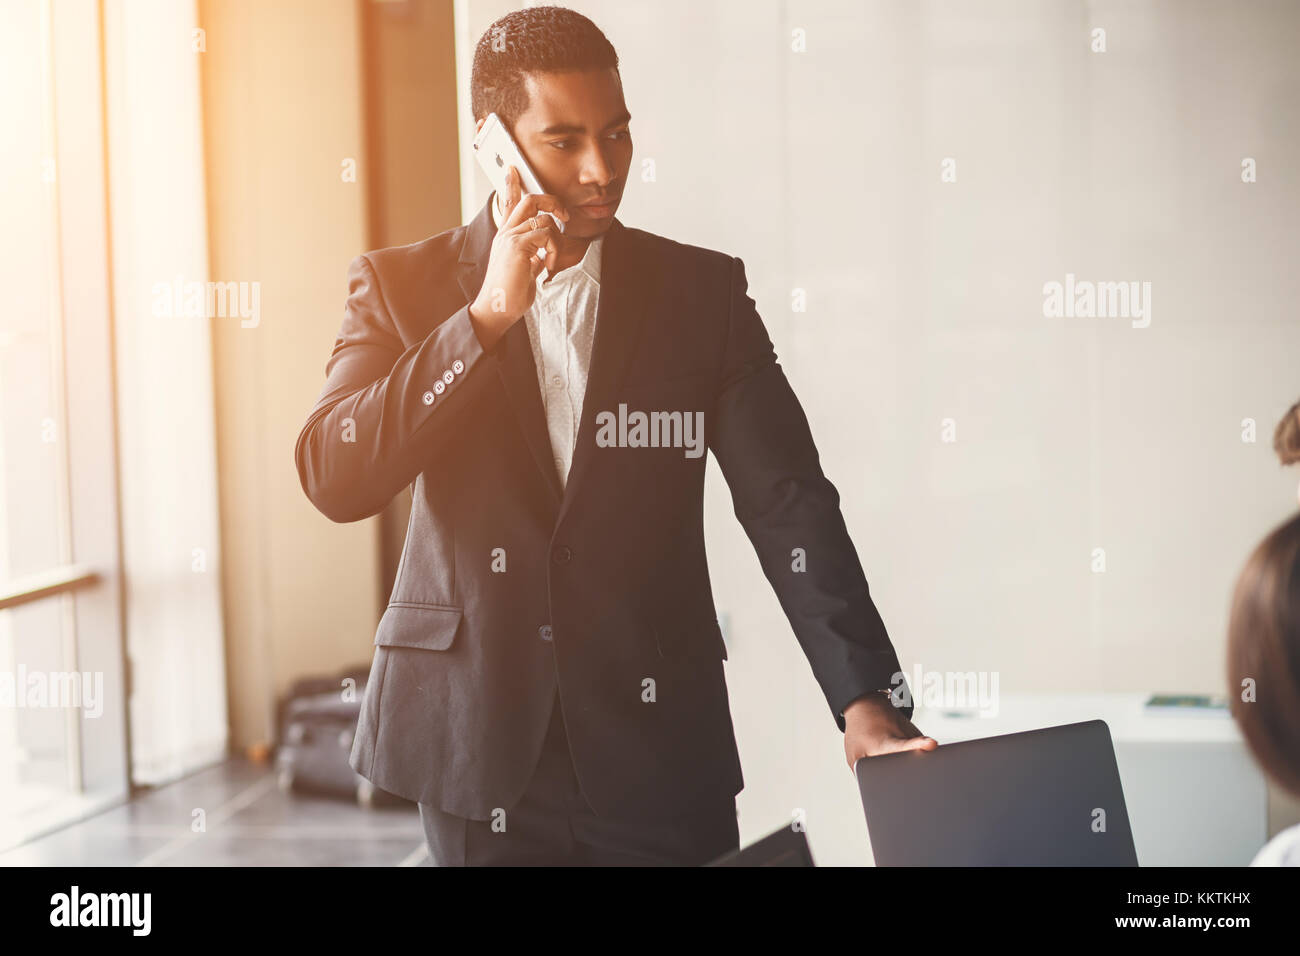 African American businessman using smart phone emailing ou de parler Photo Stock